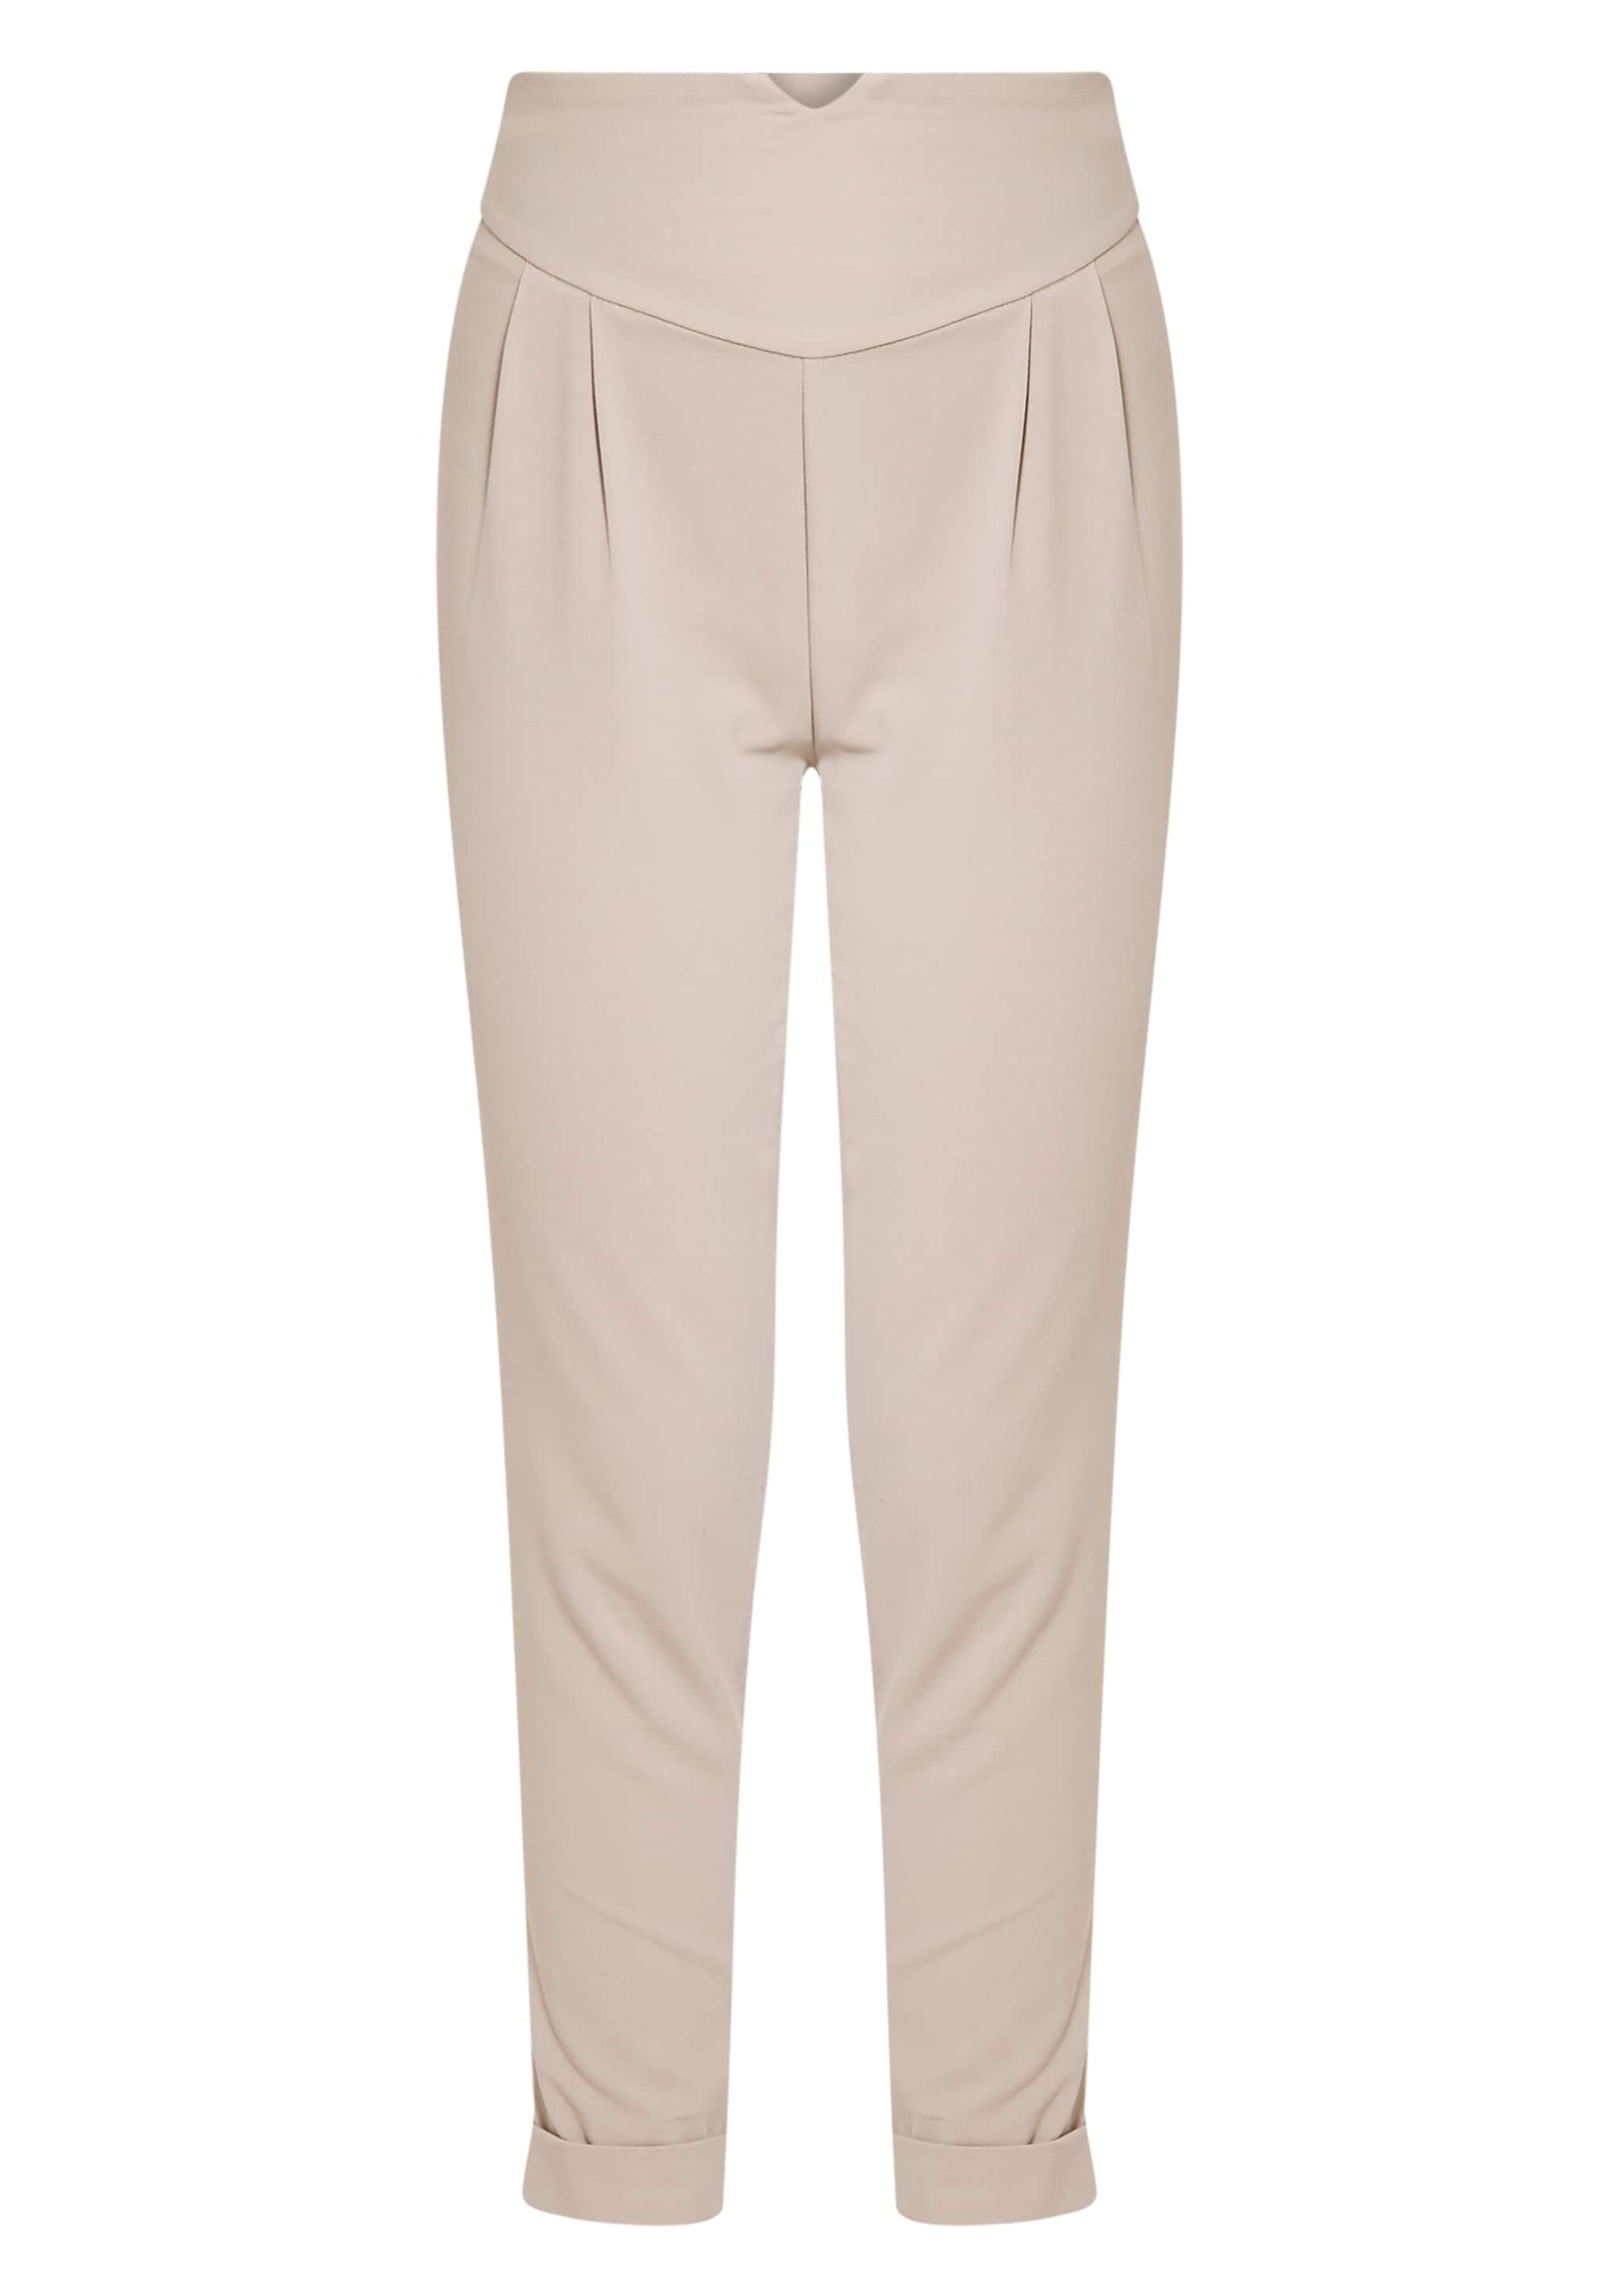 Elenor Stone High Waisted Tapered Trousers 3